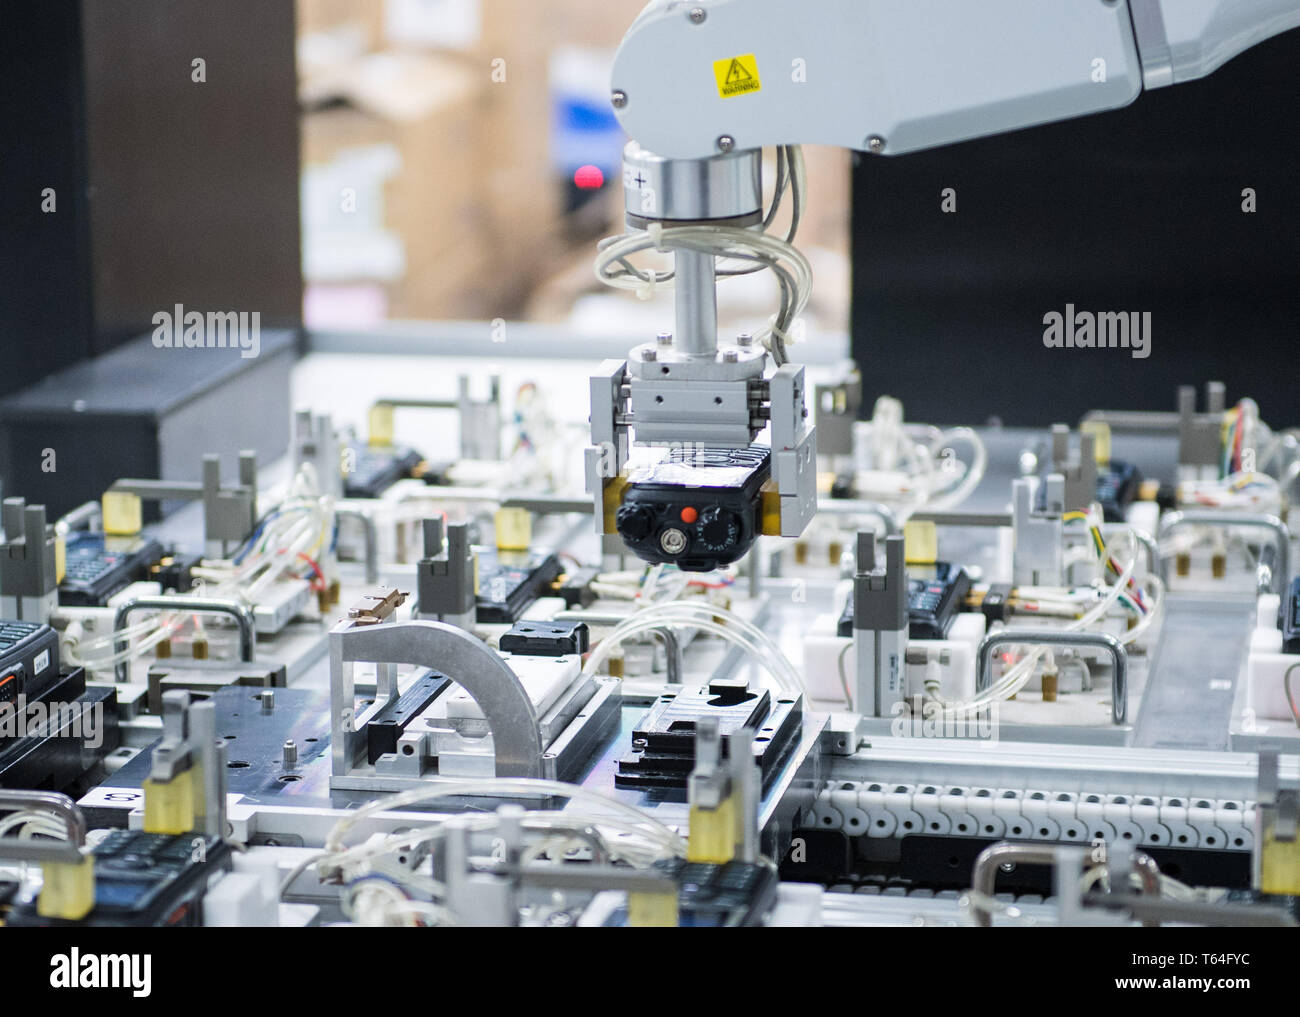 Beijing, China. 12th Dec, 2018. Photo taken on Dec. 12, 2018 shows a smart production line of Hytera Communications Corporation Limited in Shenzhen, south China's Guangdong Province. Credit: Mao Siqian/Xinhua/Alamy Live News - Stock Image